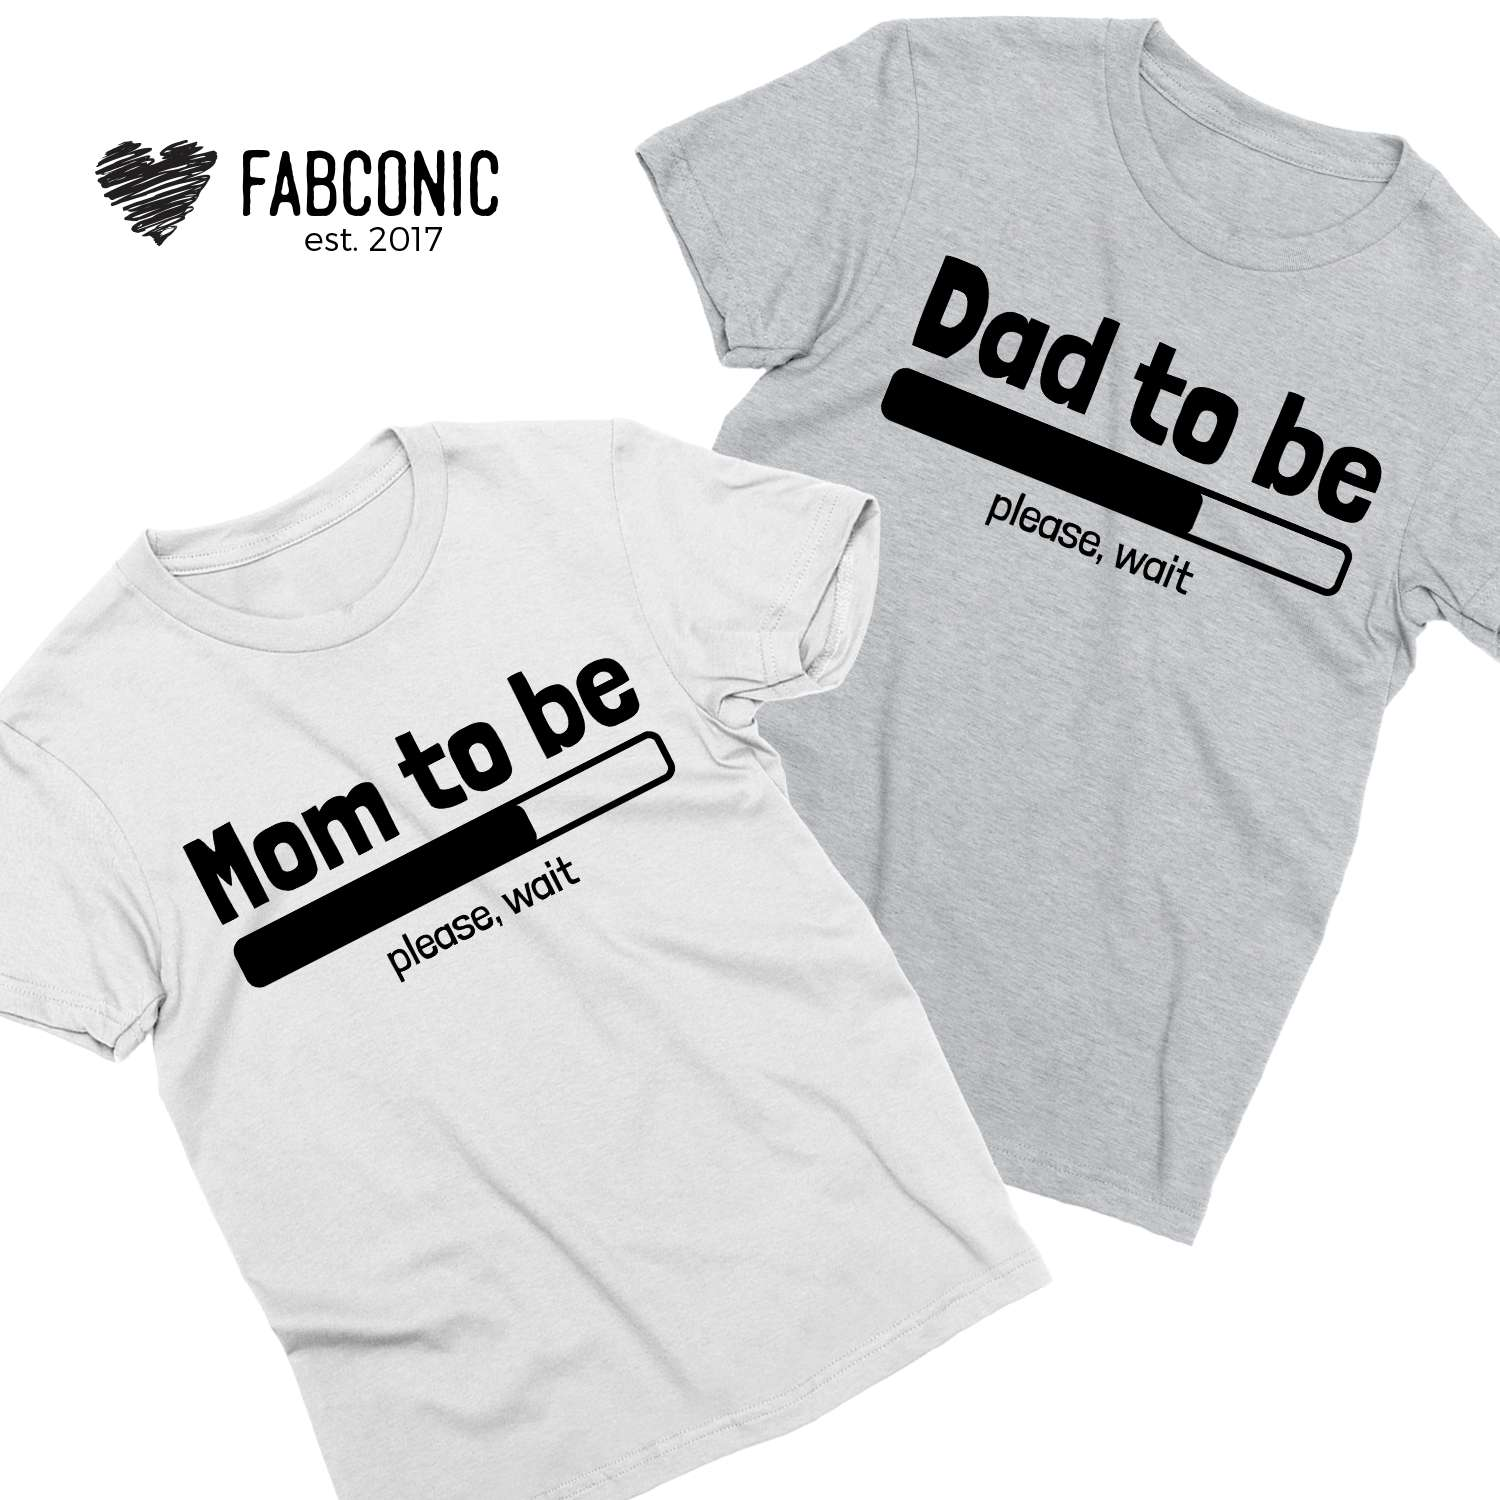 bc734d45 Pregnancy announcement shirts, Loading Mom to be, Dad to be